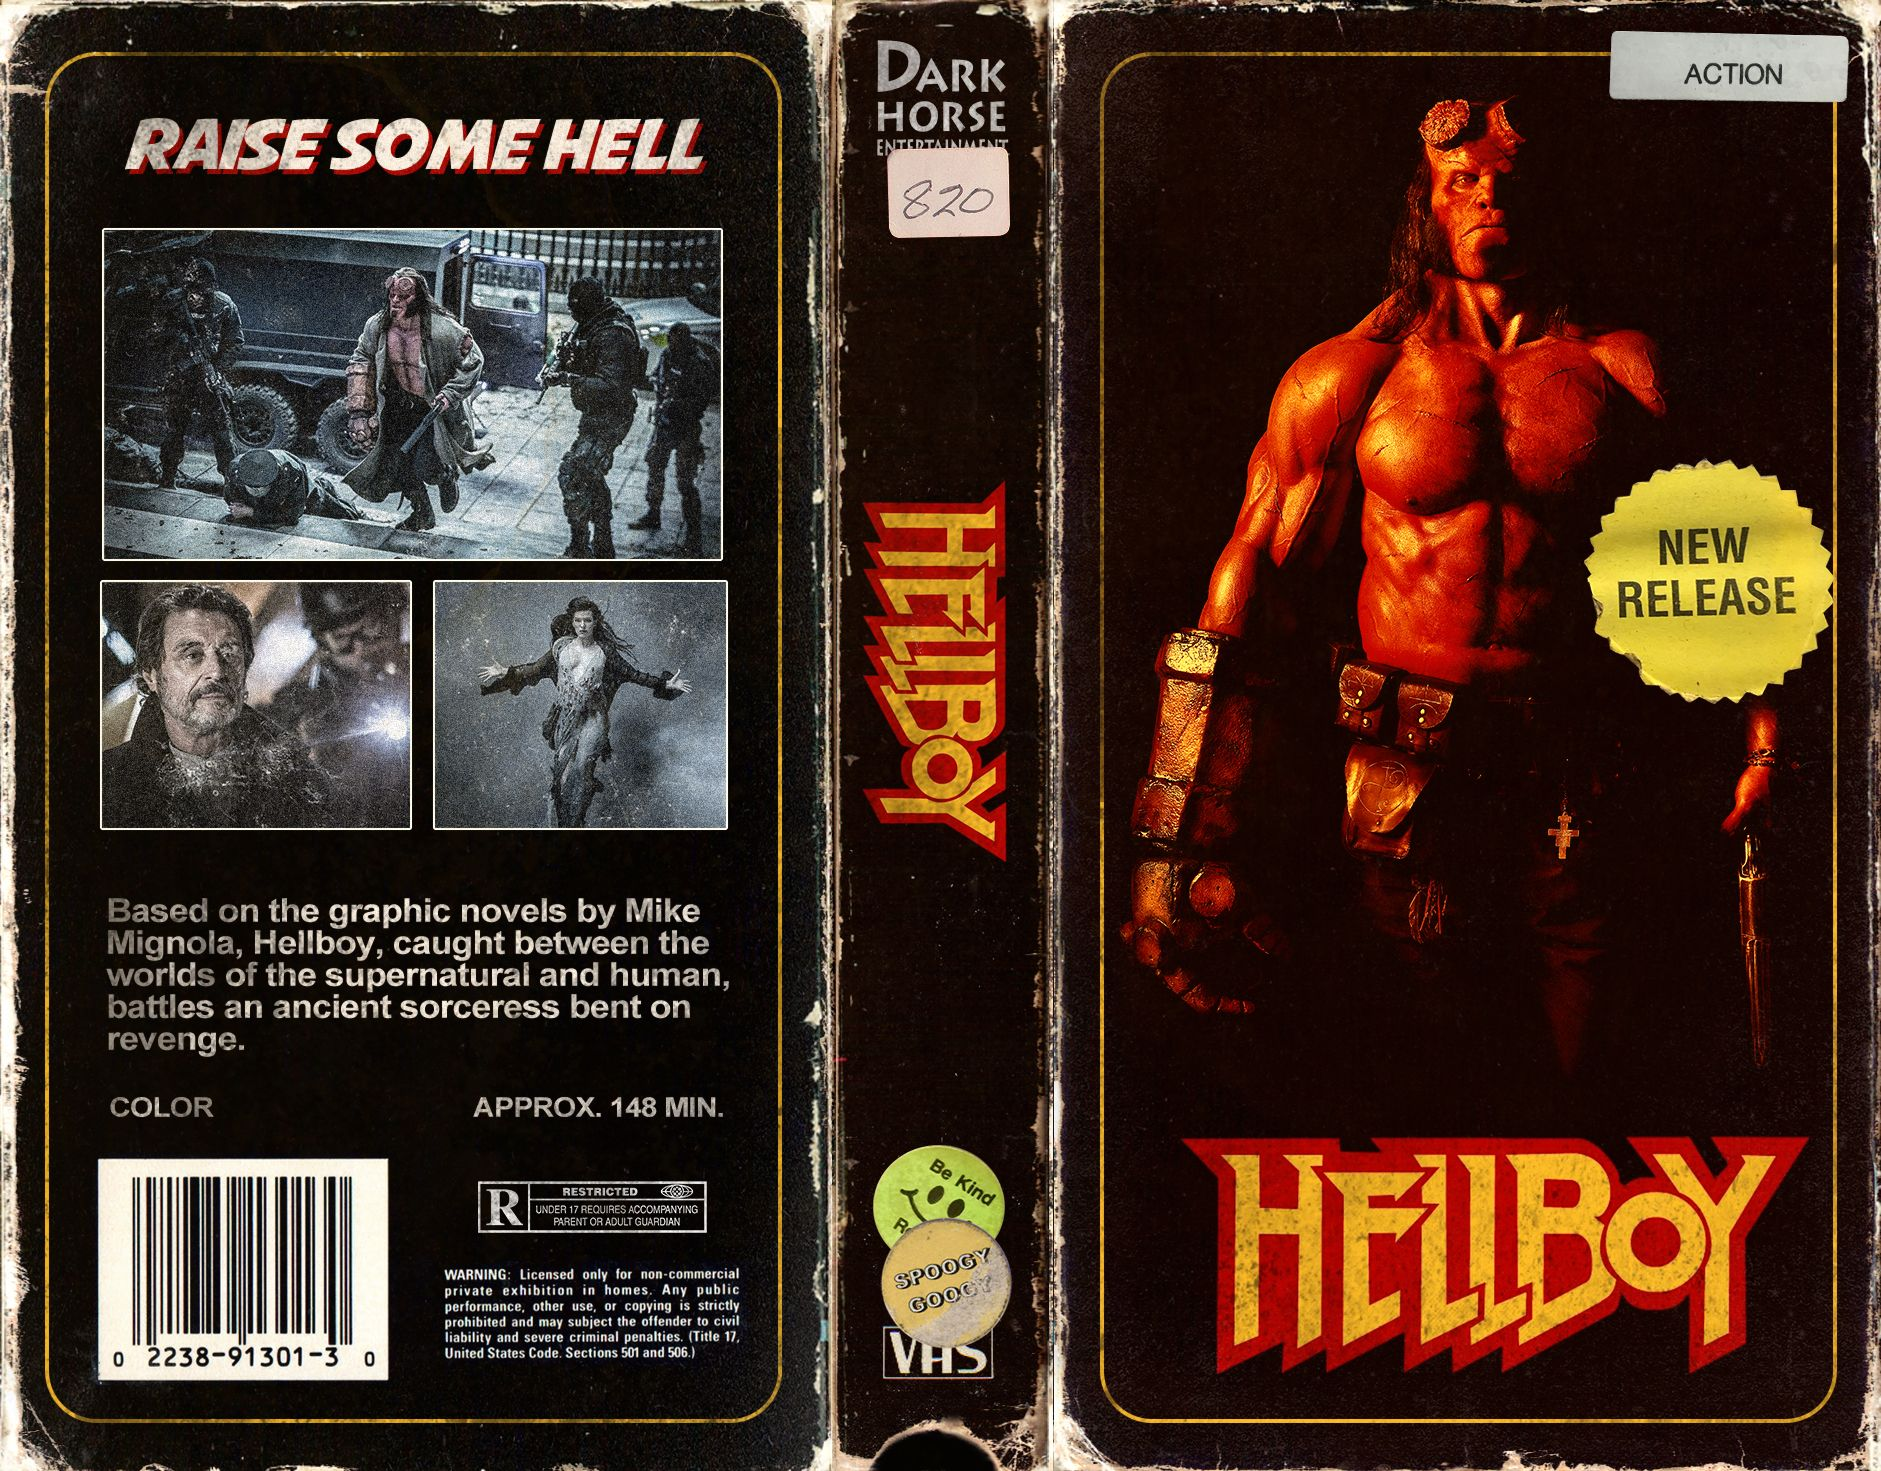 Hellboy Vhs Cover Art